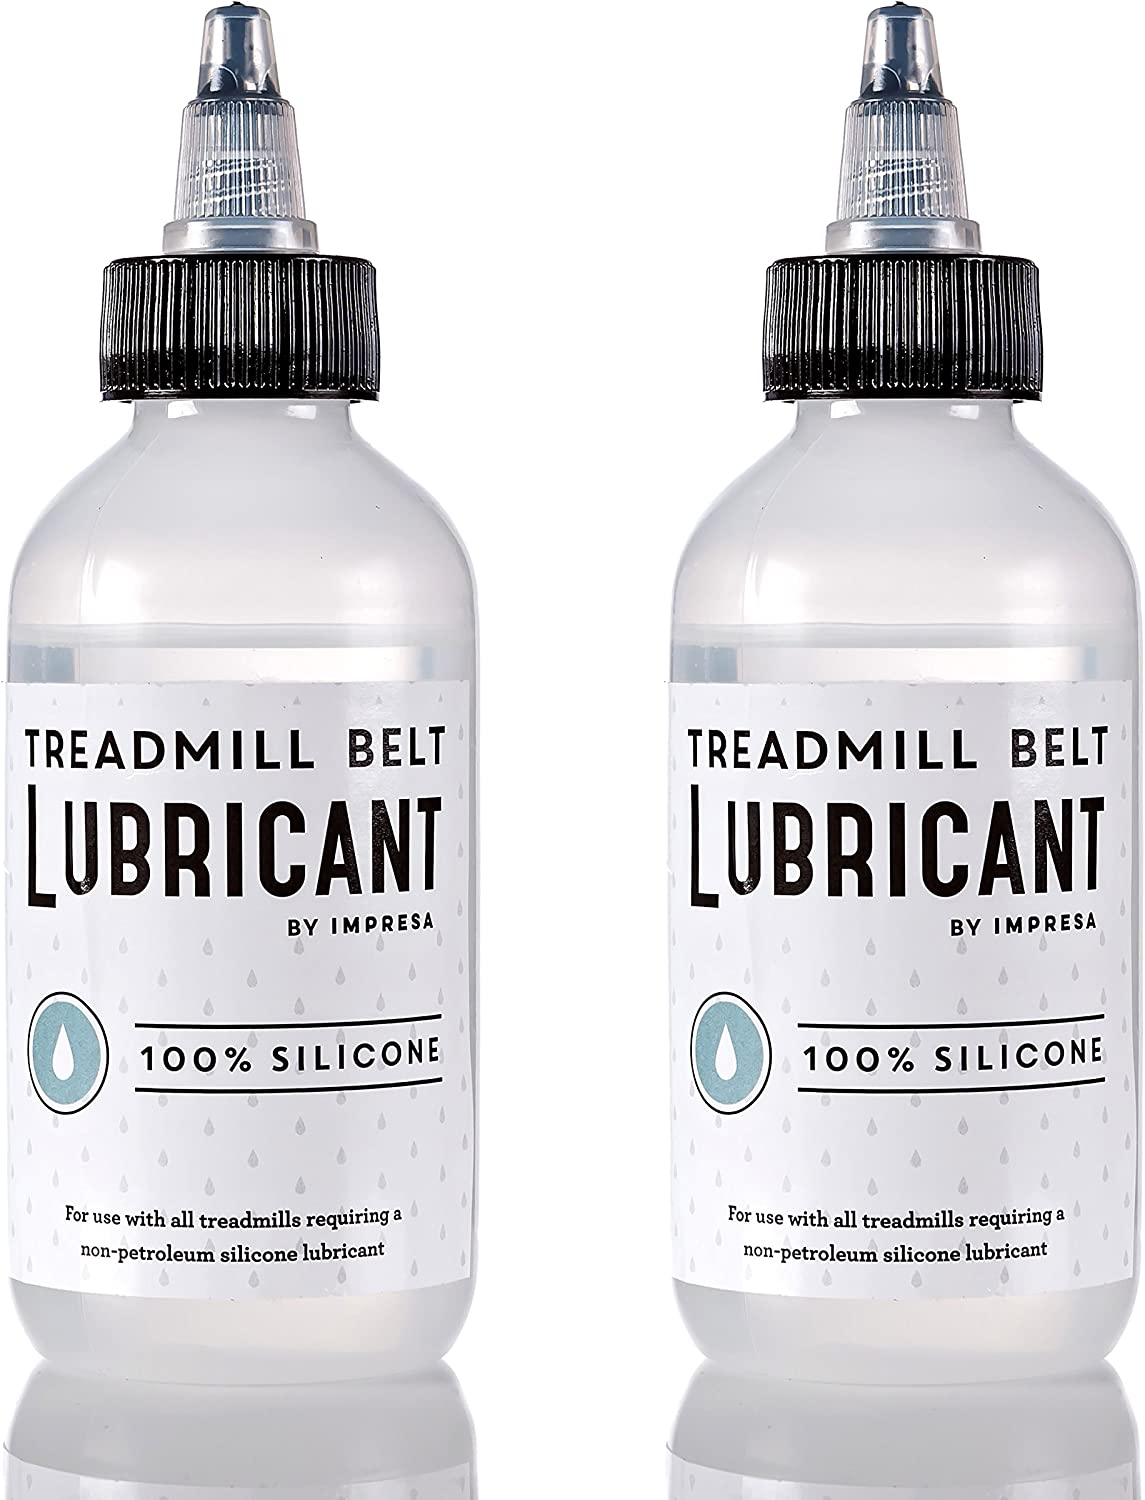 2 Pack of 100% Silicone Treadmill Belt Lubricant/Lube - Easy to Apply Lubrication - Made in The USA